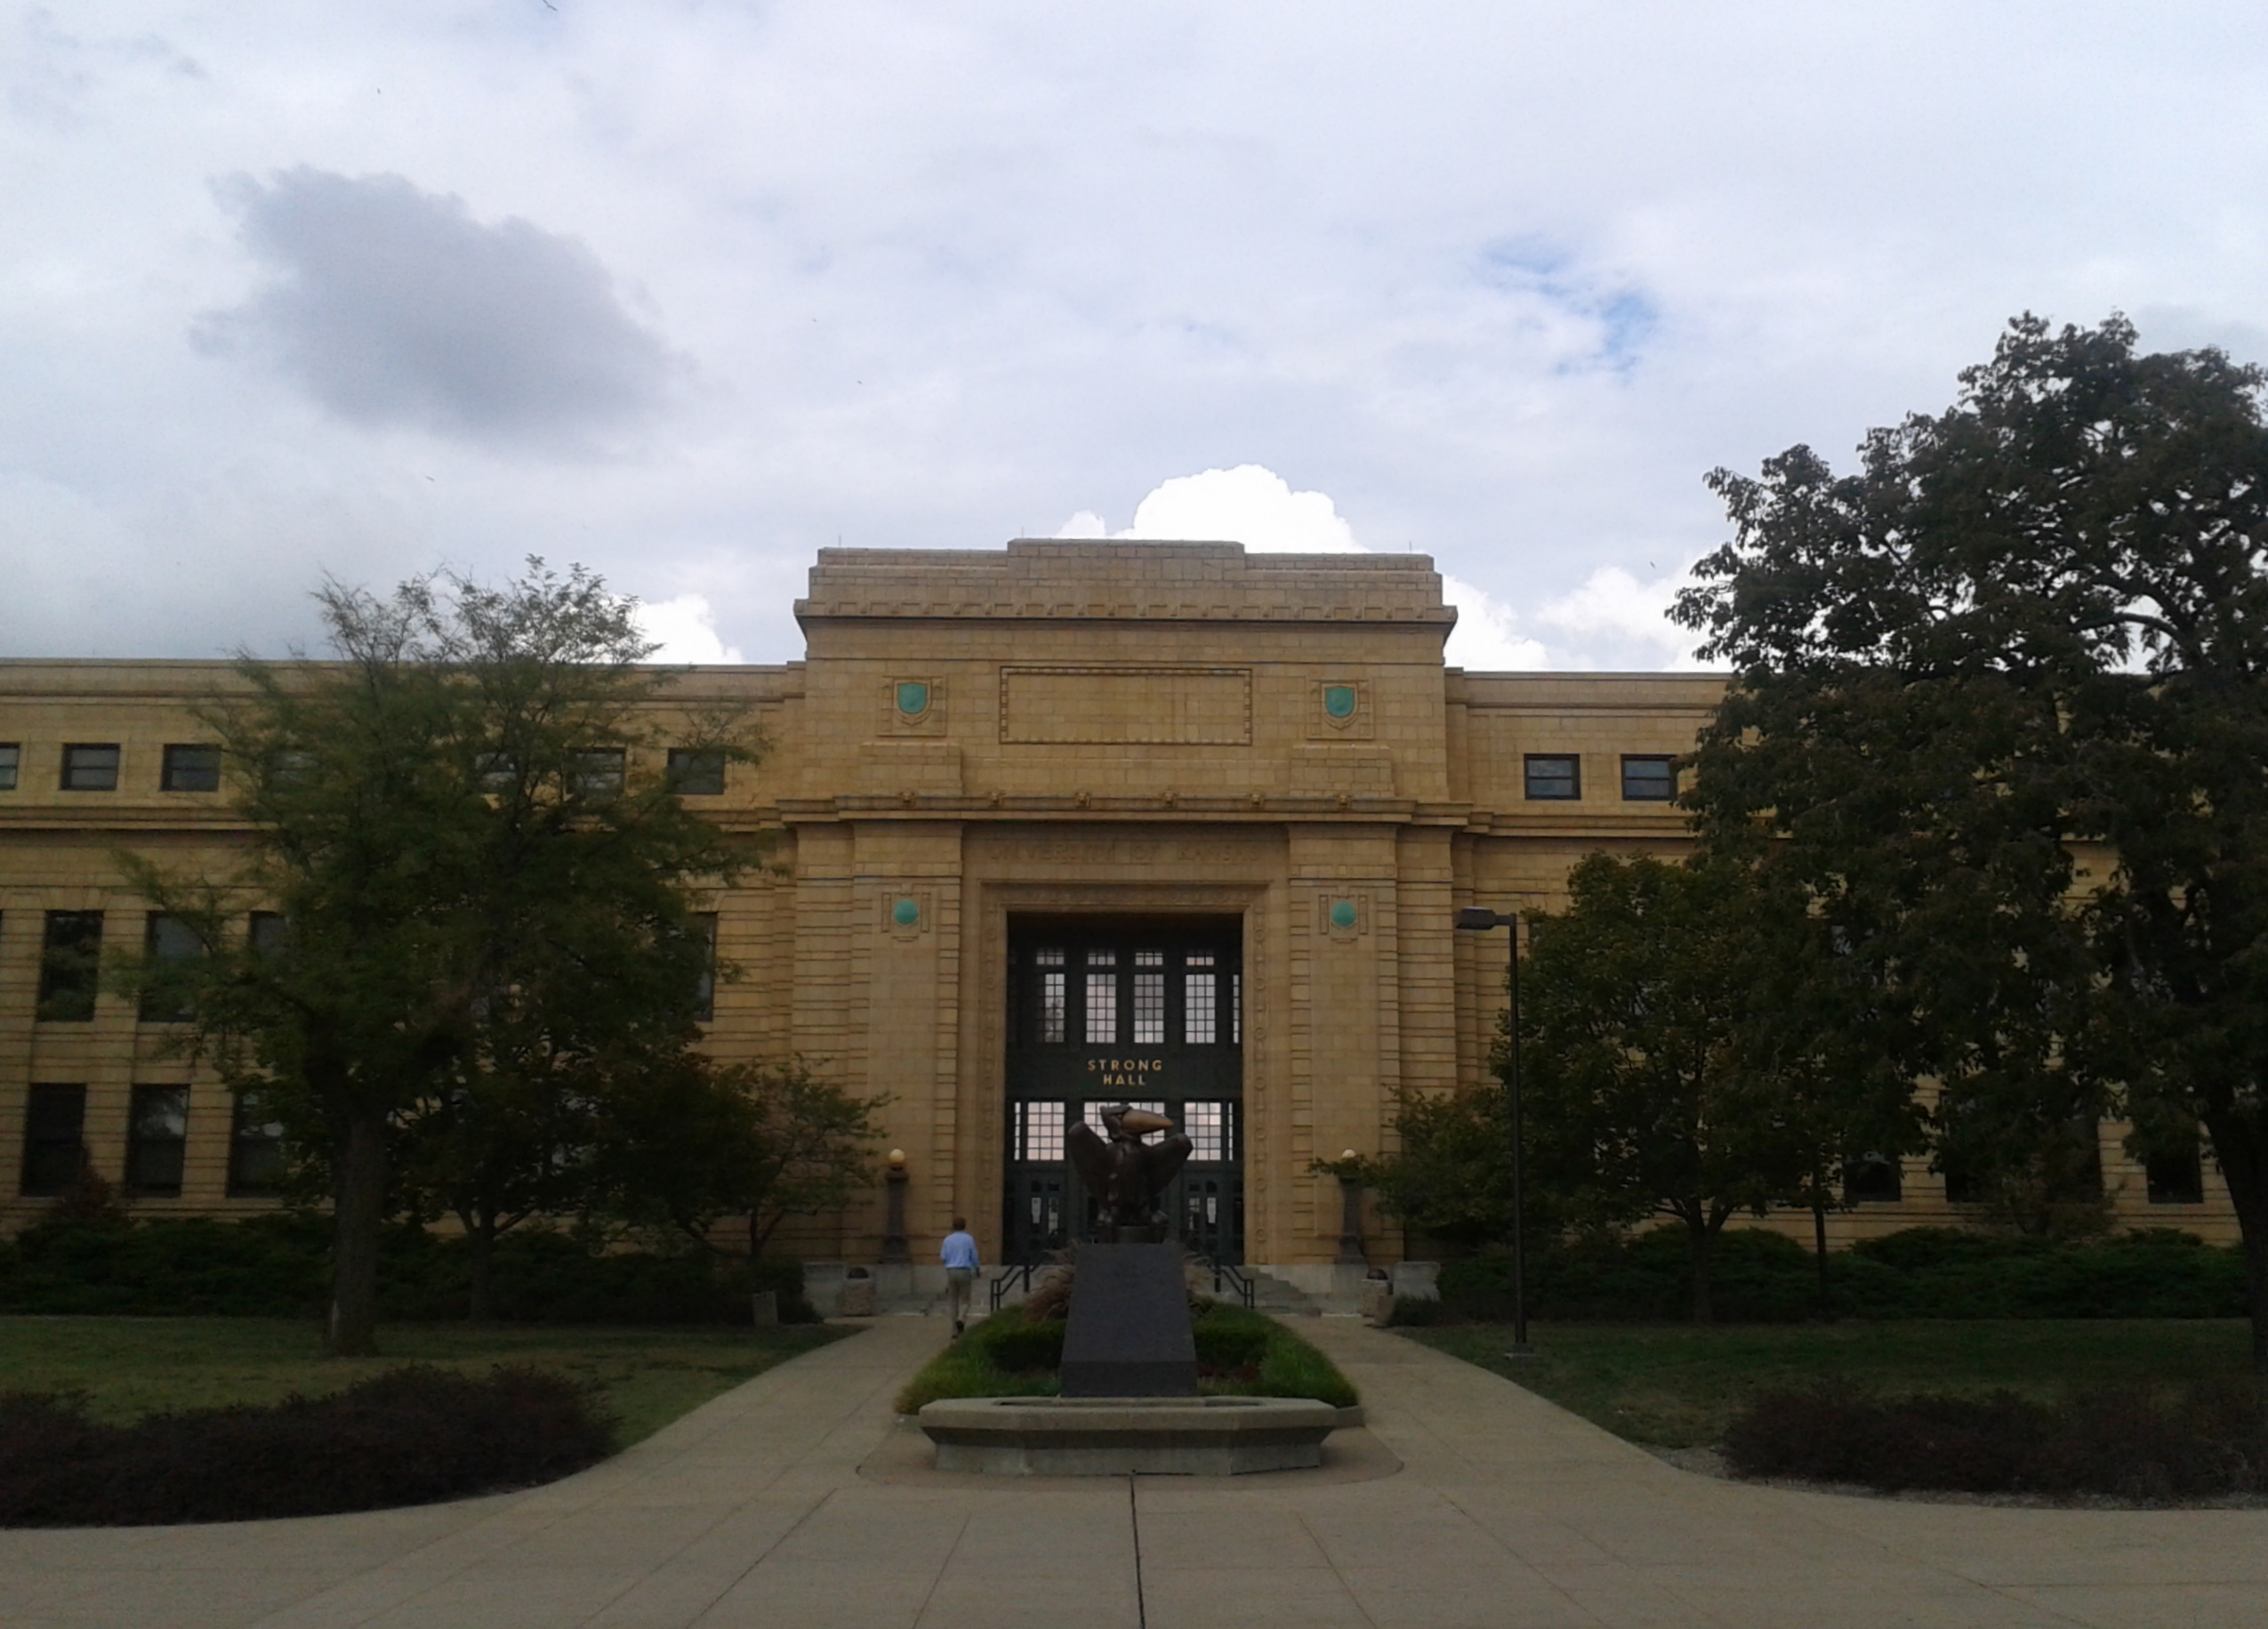 ku campus map with File Strong Hall University Of Kansas  Lawrence C Us on Kontakt as well Dorm besides C us Map besides Kansas City Public Library Plaza Branch together with Kutztown C us Map.